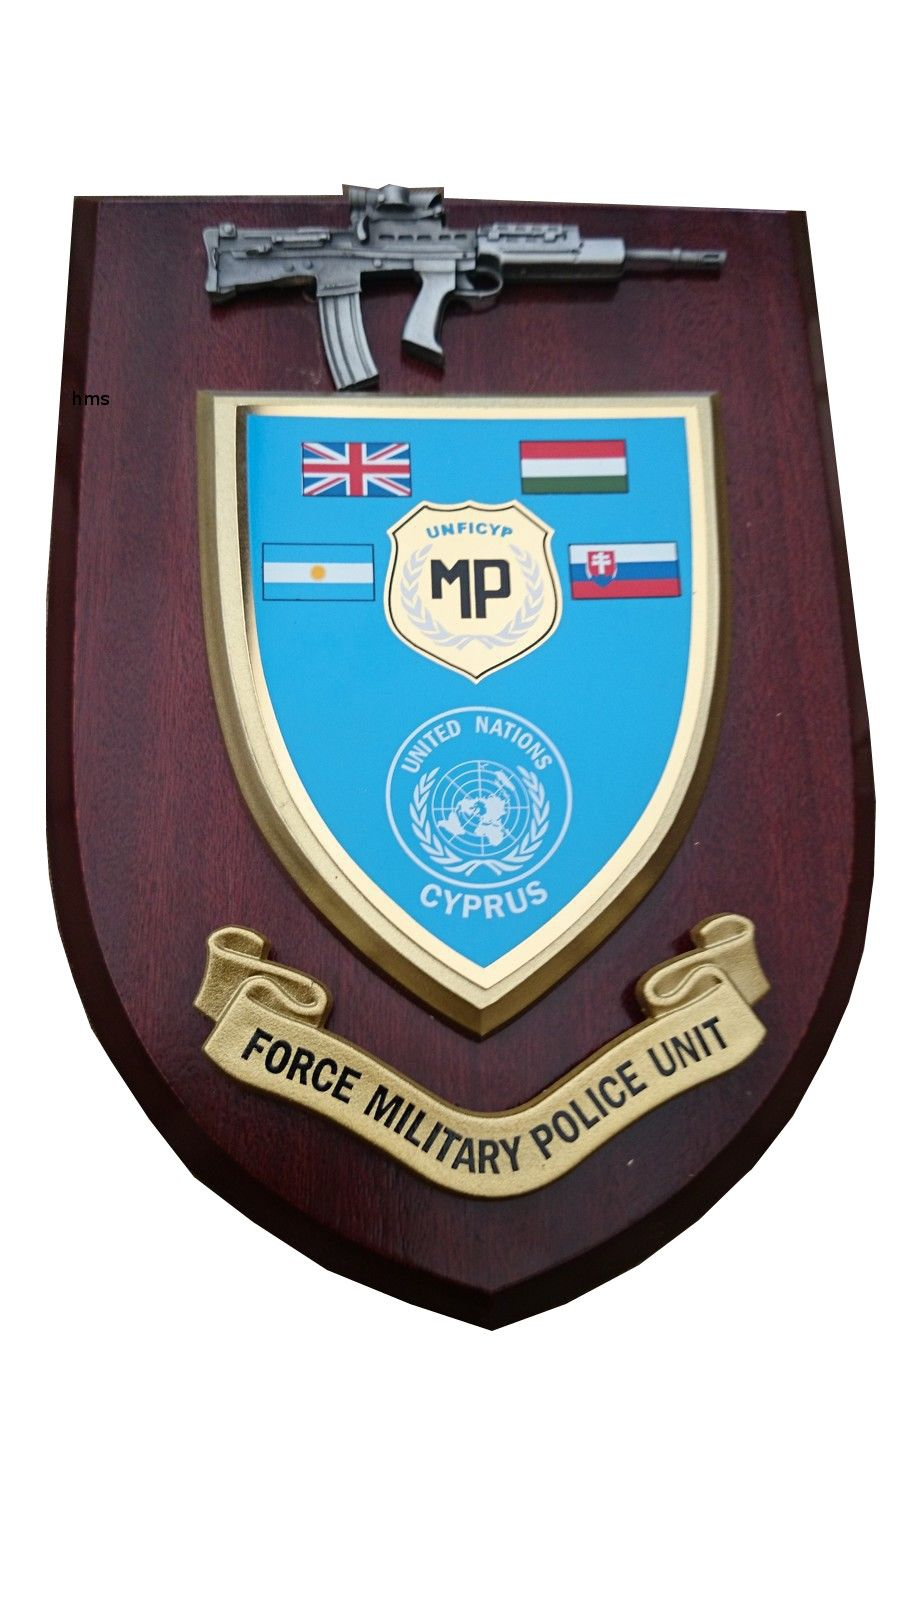 Military Police Force Unit Cyprus United Nations Wall Plaque + Pewter SA80